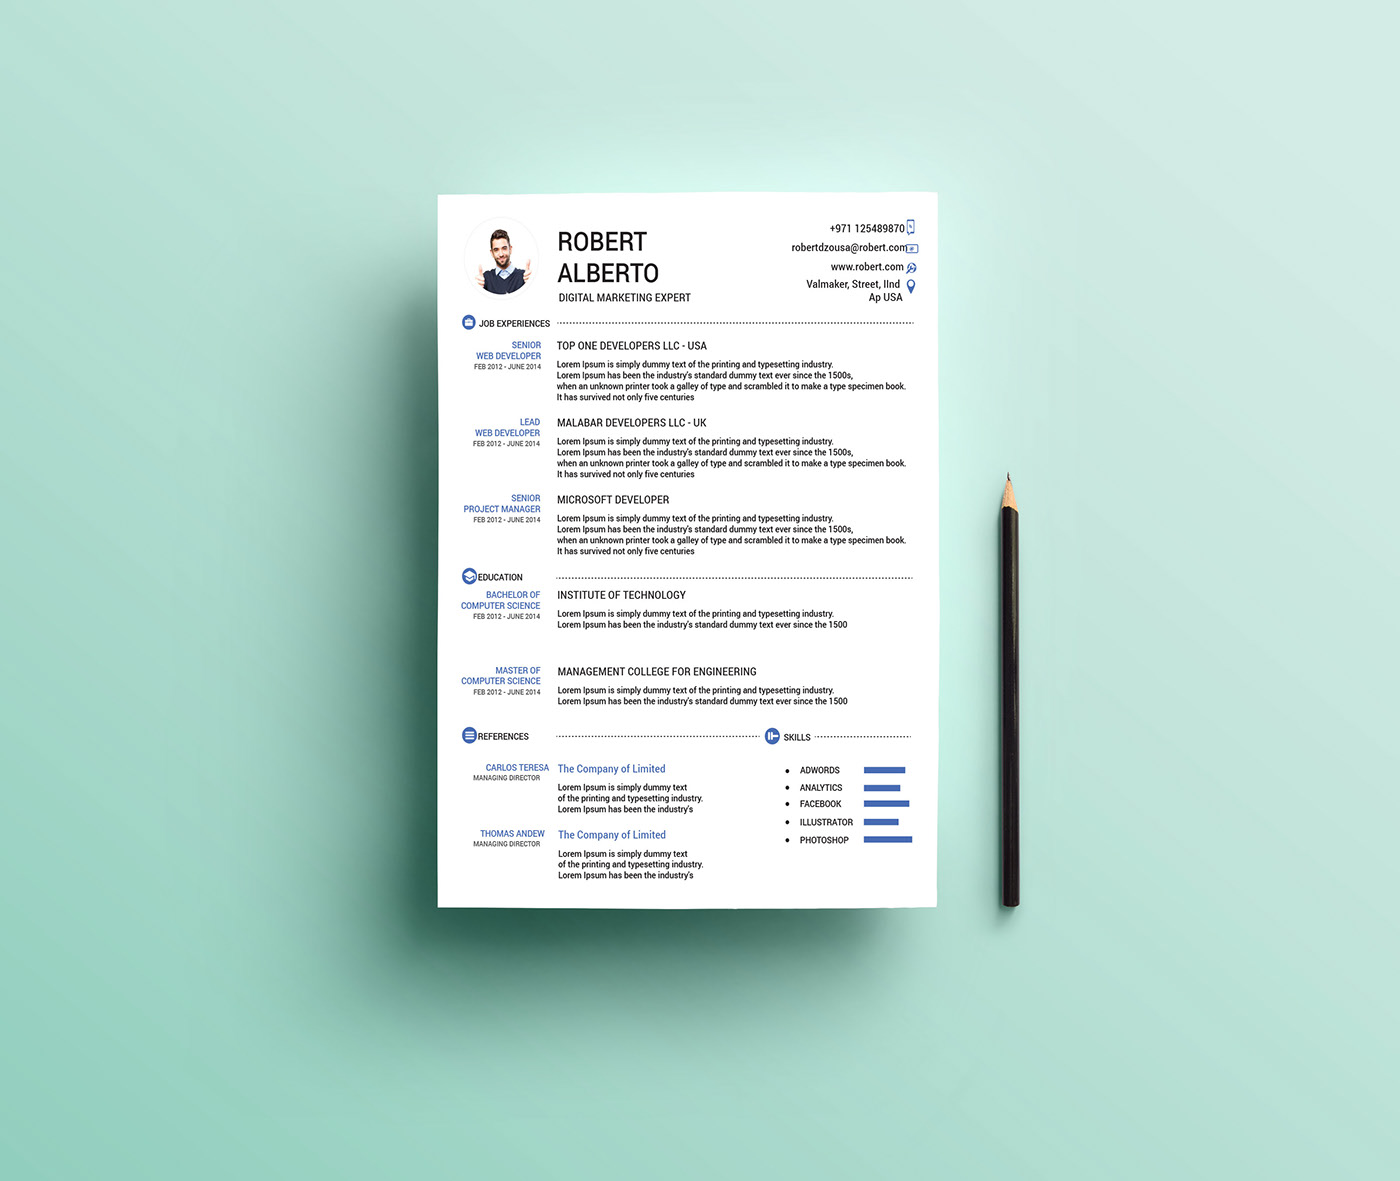 free one resume templates create on microsoft word clean template entry level cyber Resume Create Resume On Microsoft Word